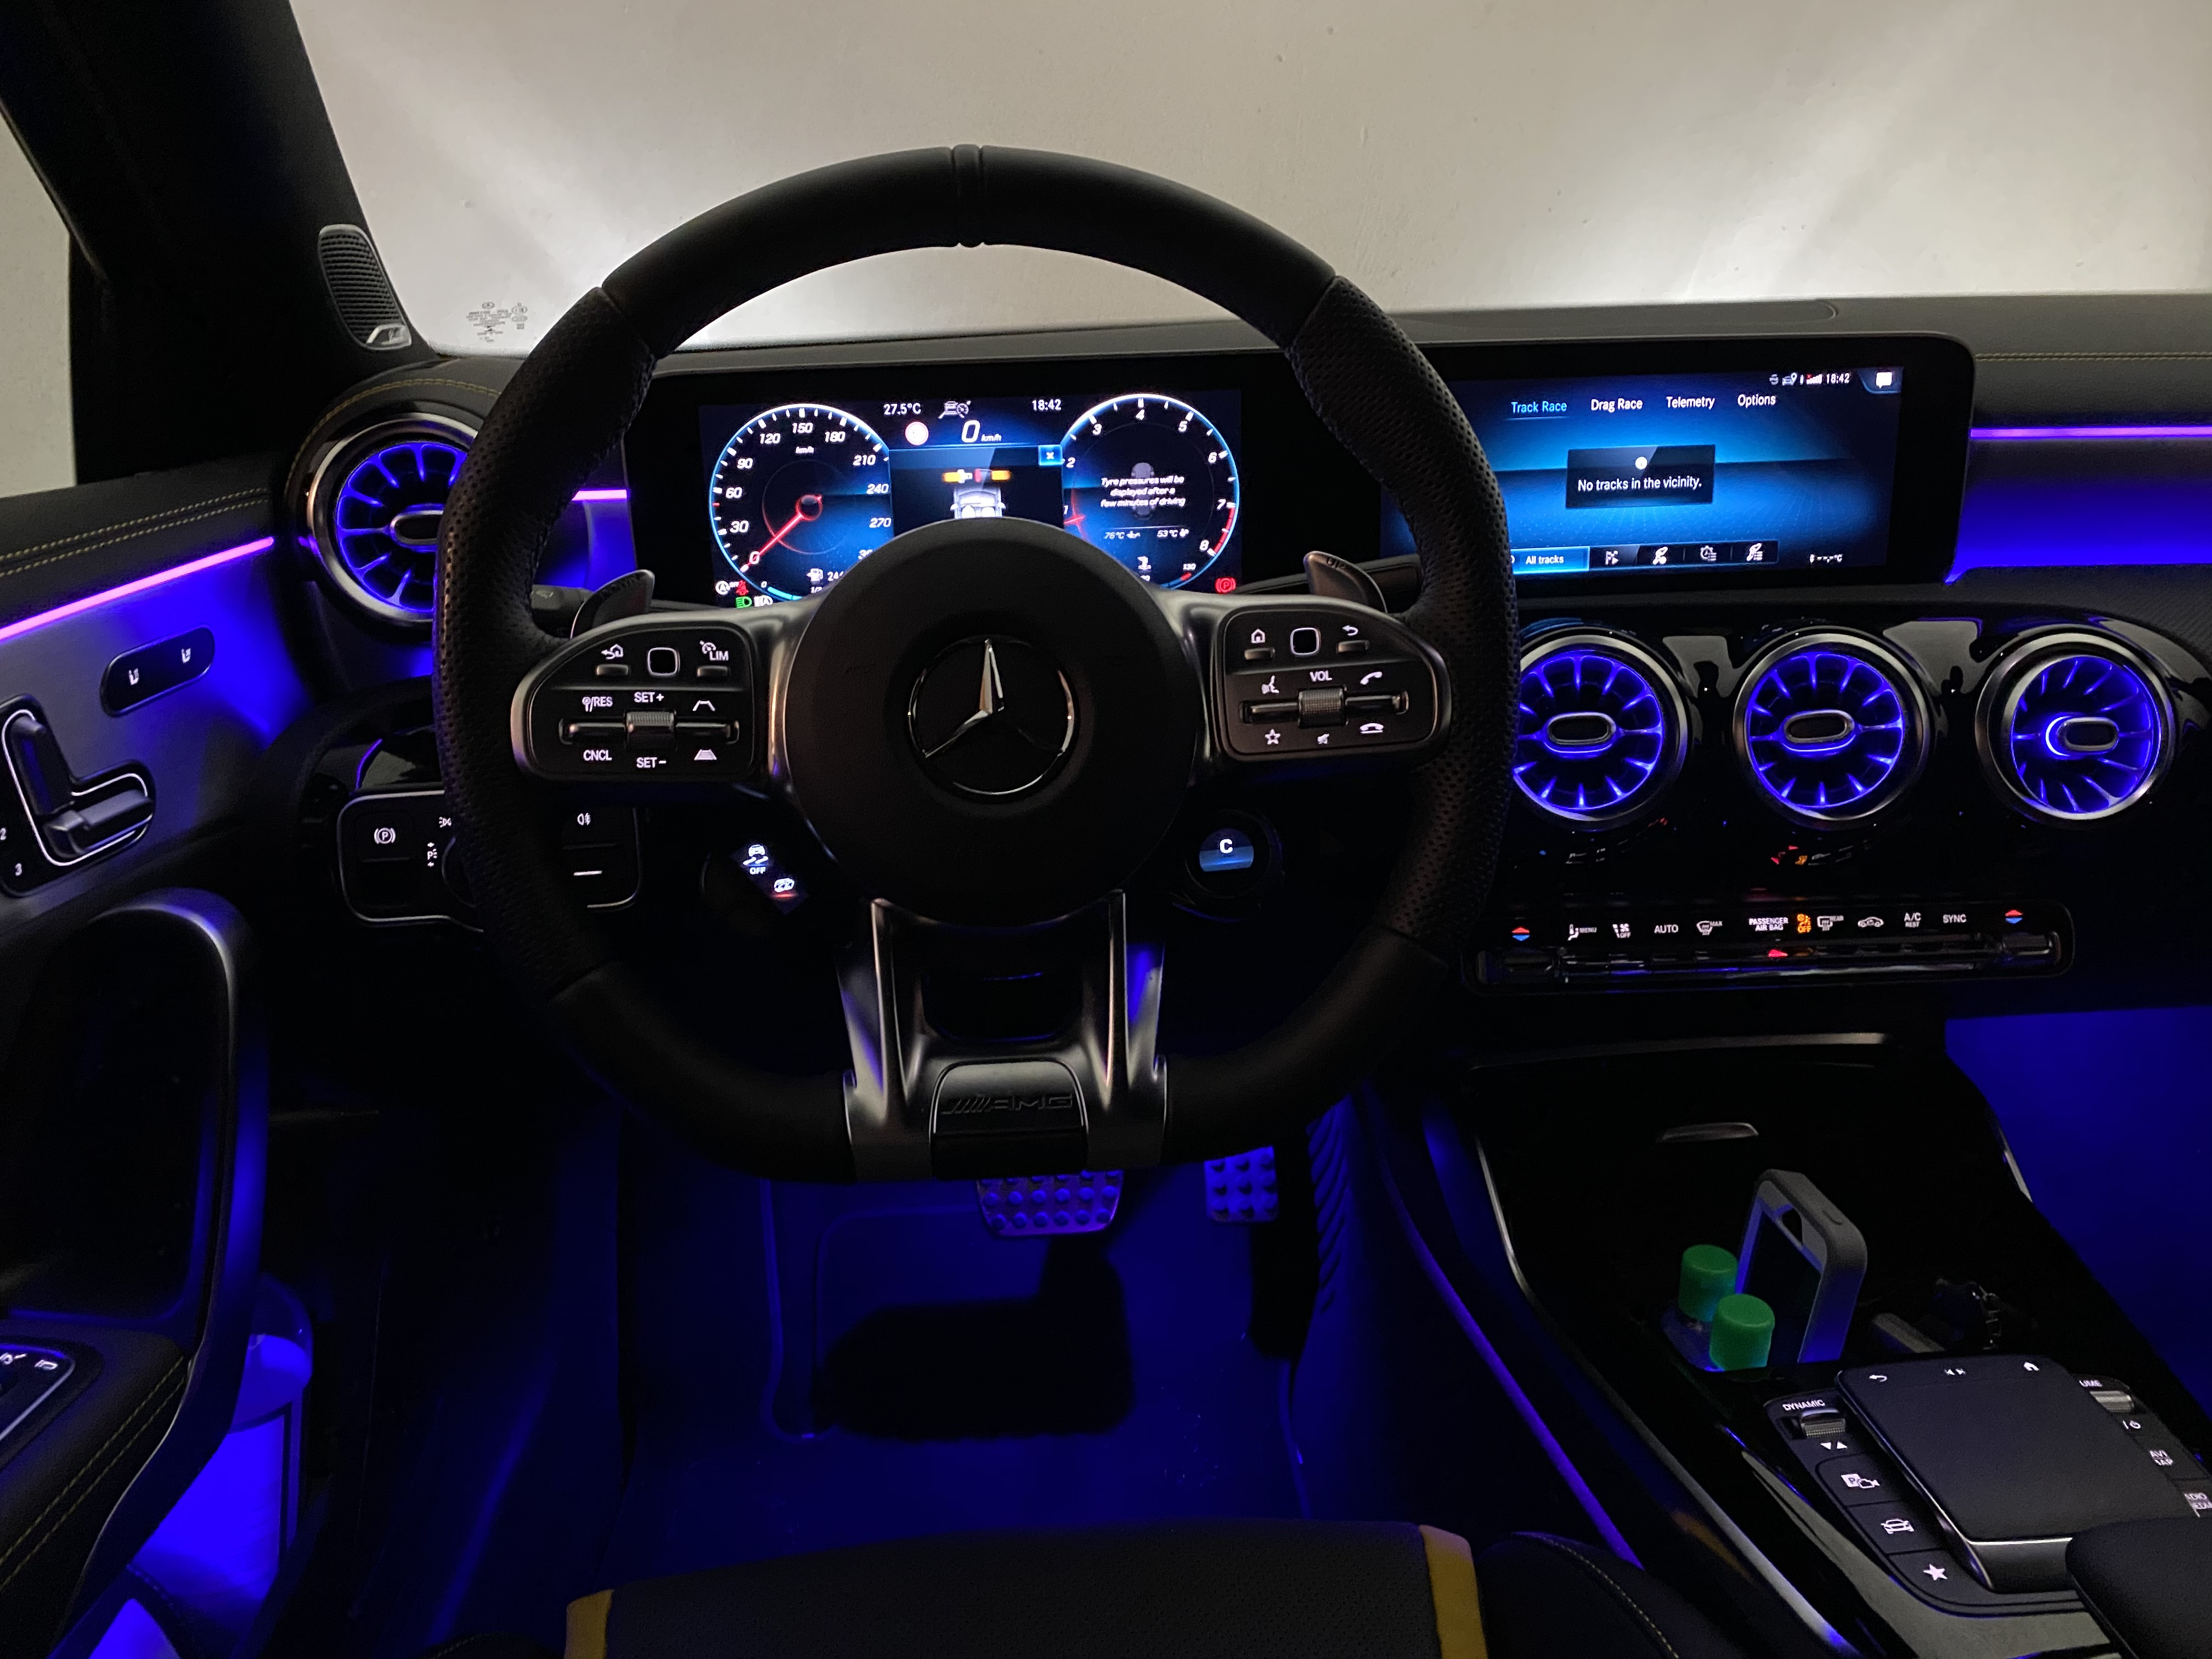 a45s_interior_front10.jpg